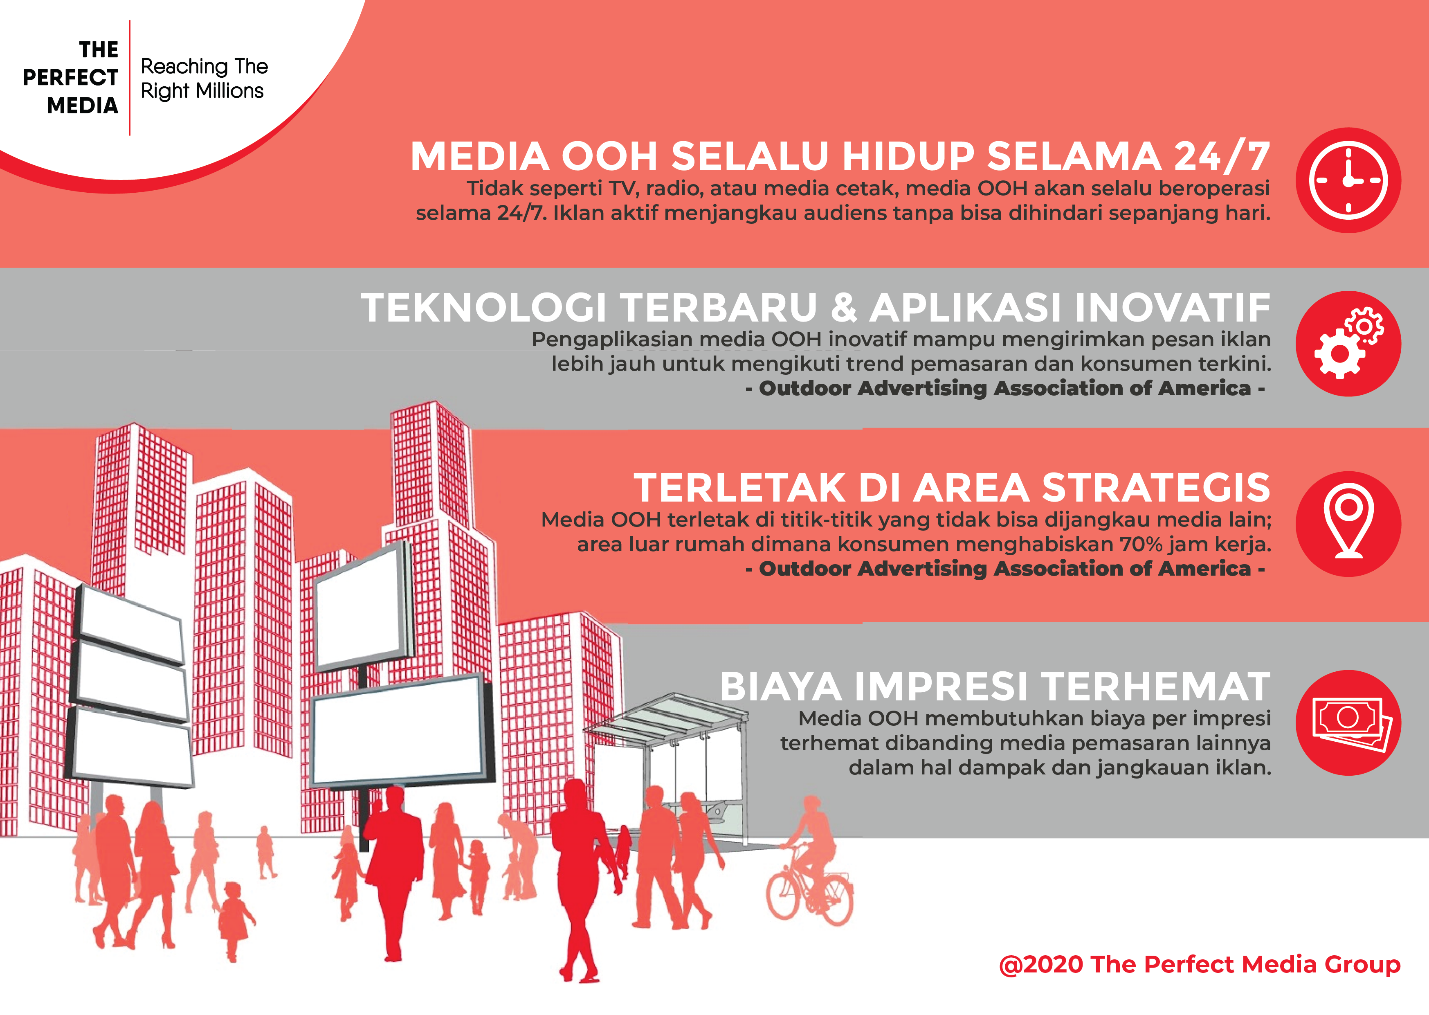 Media OOH Sangat Efektif sebagai Media Promosi 24 Jam Setiap Hari. Sumber: The Perfect Media